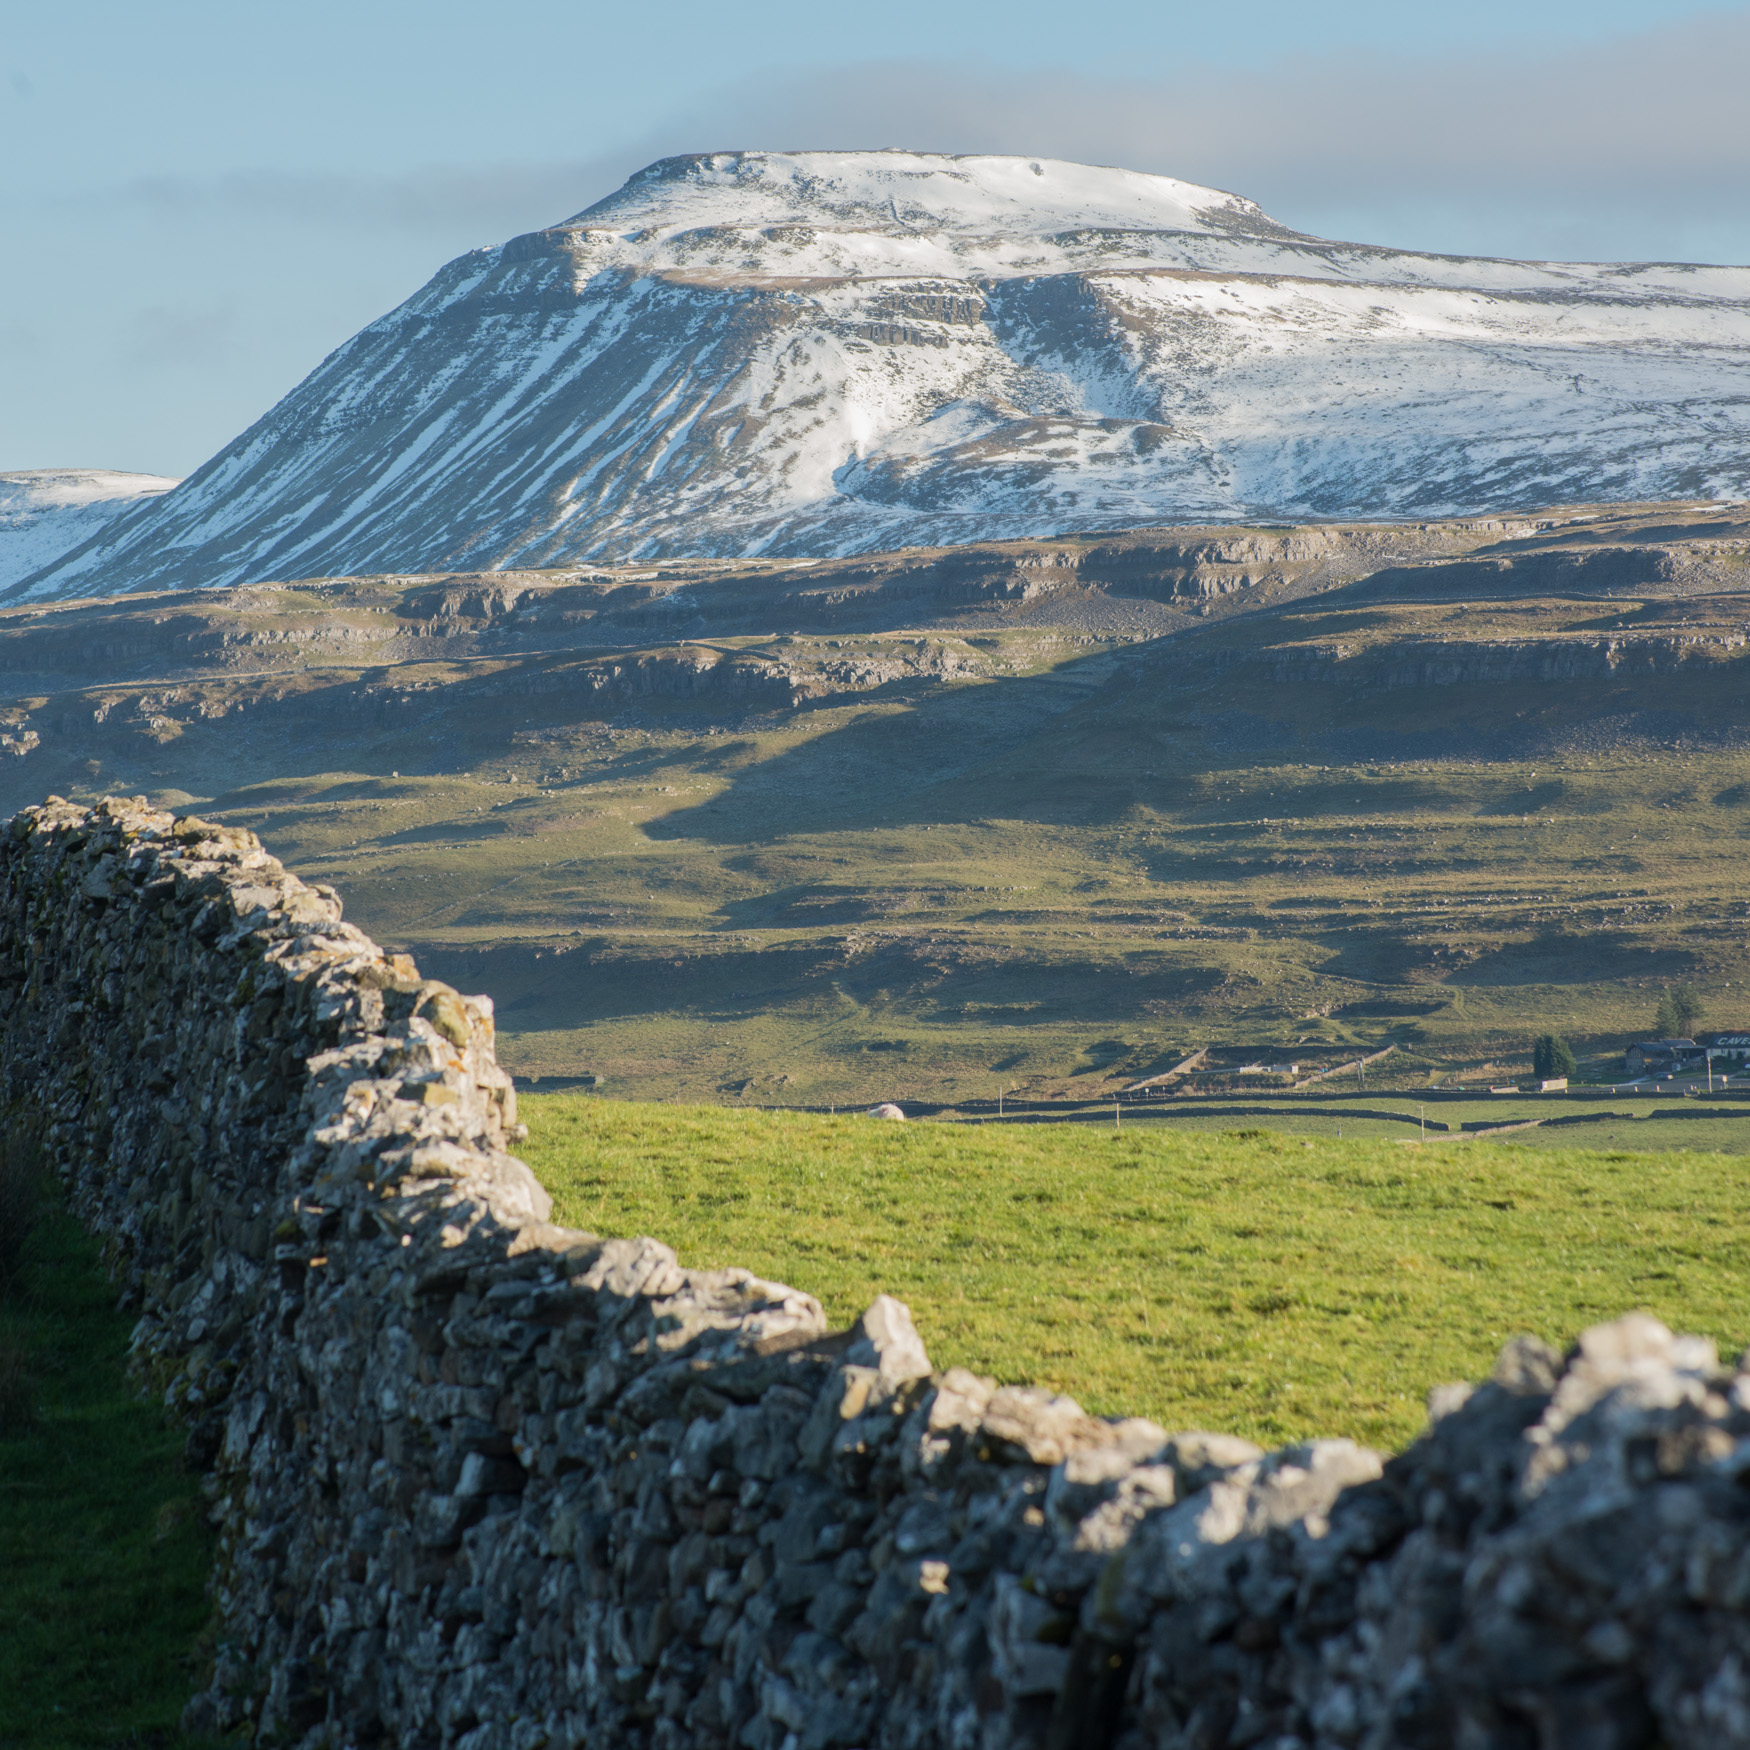 Looking to Ingleborough, Yorkshire Dales. Image Rob Fraser.